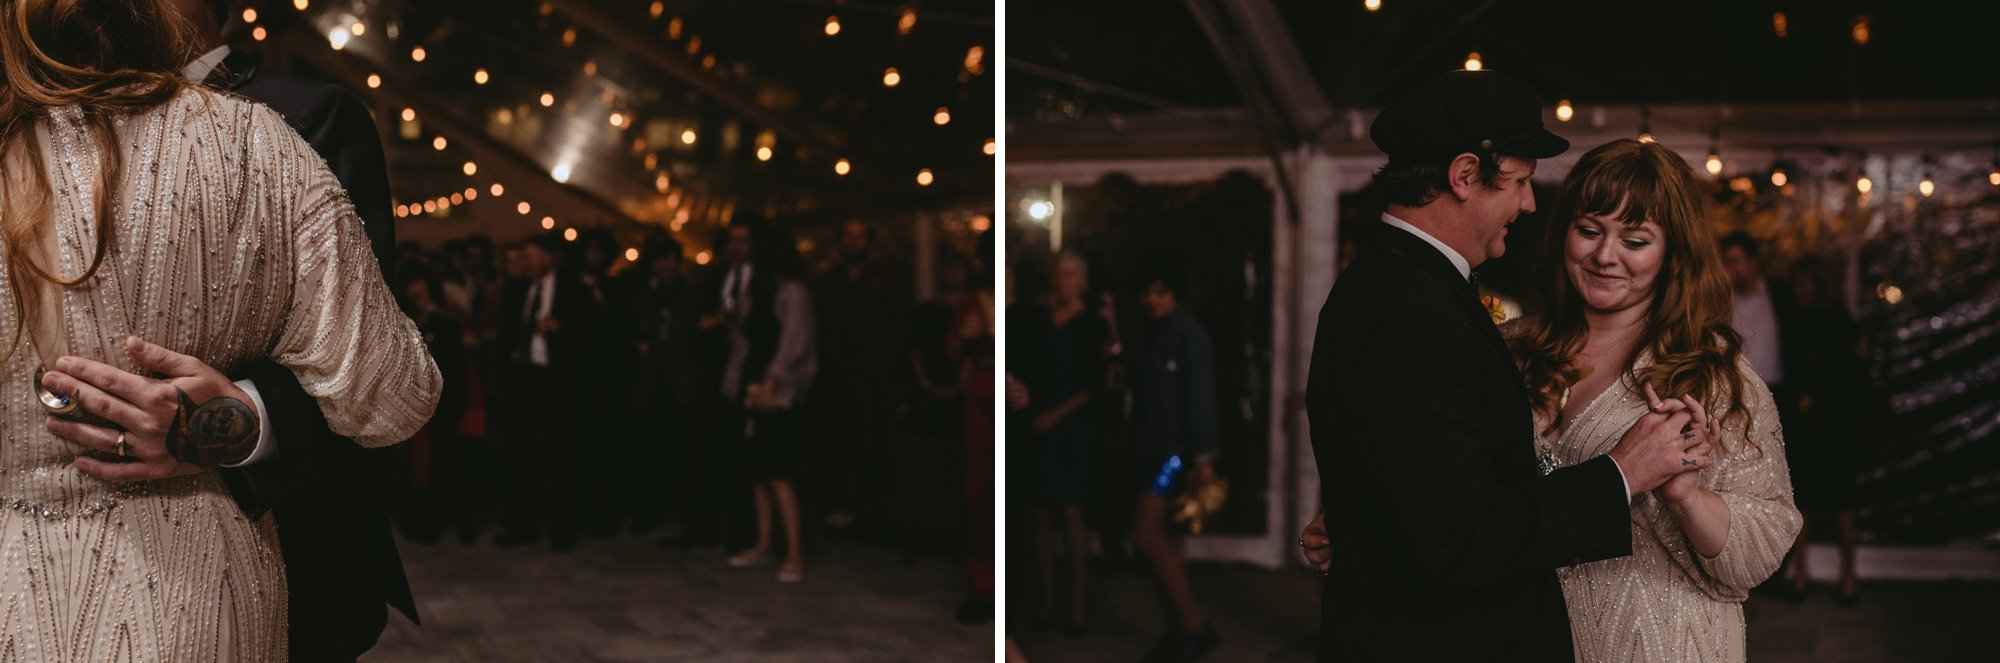 Autumn Richmond VA winery wedding at Upper Shirley Vineyards with lush garden florals and old Hollywood glamour couple dancing